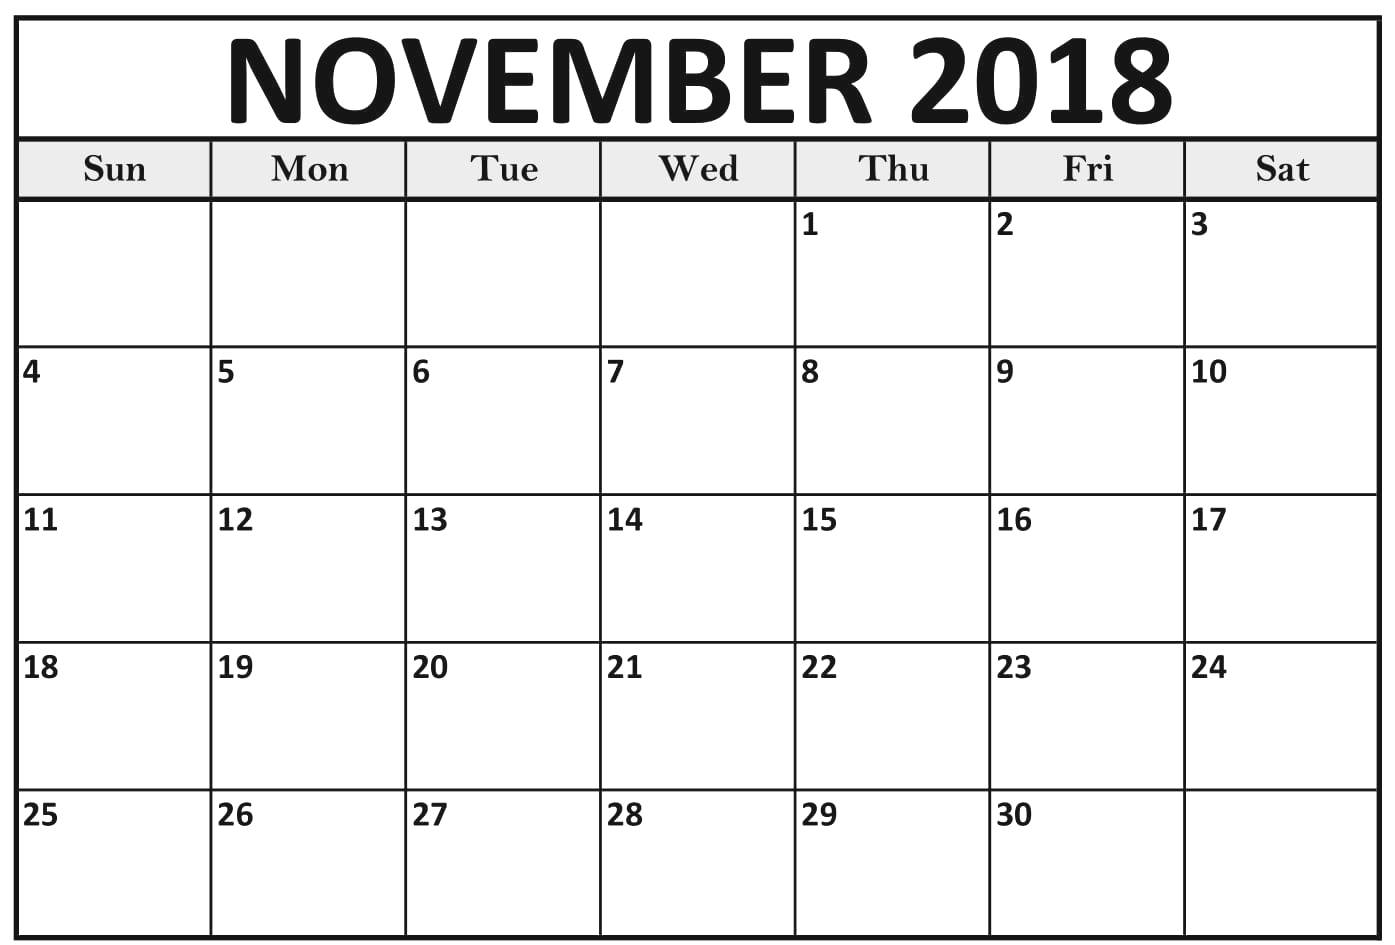 Download November 2018 Calendar Word Document